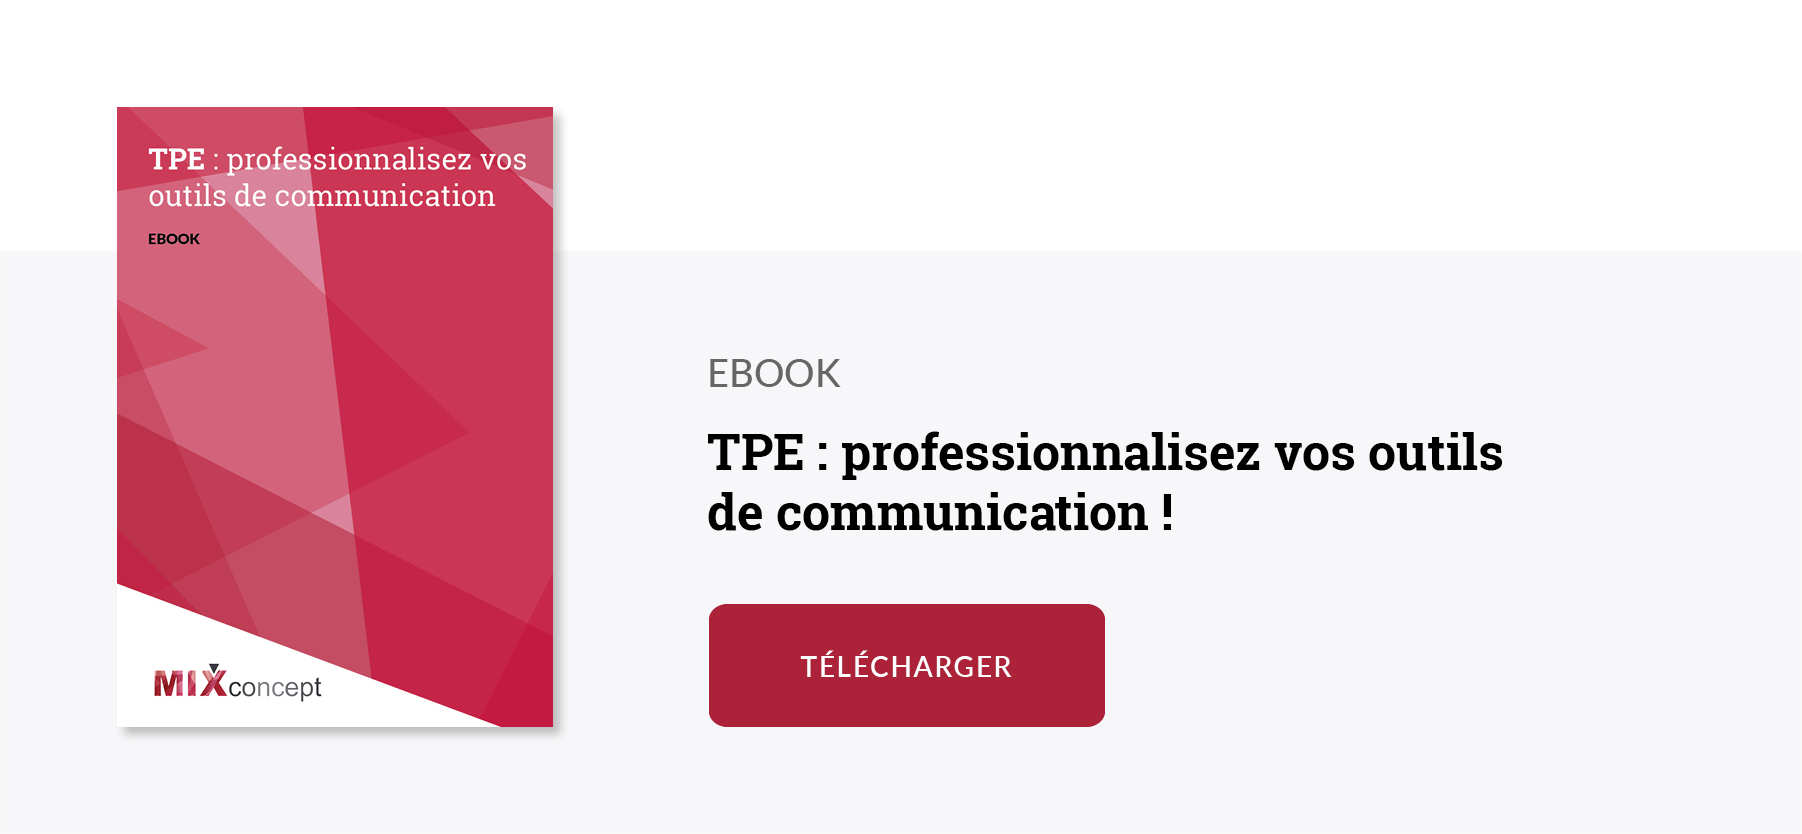 professionnaliser outils communication